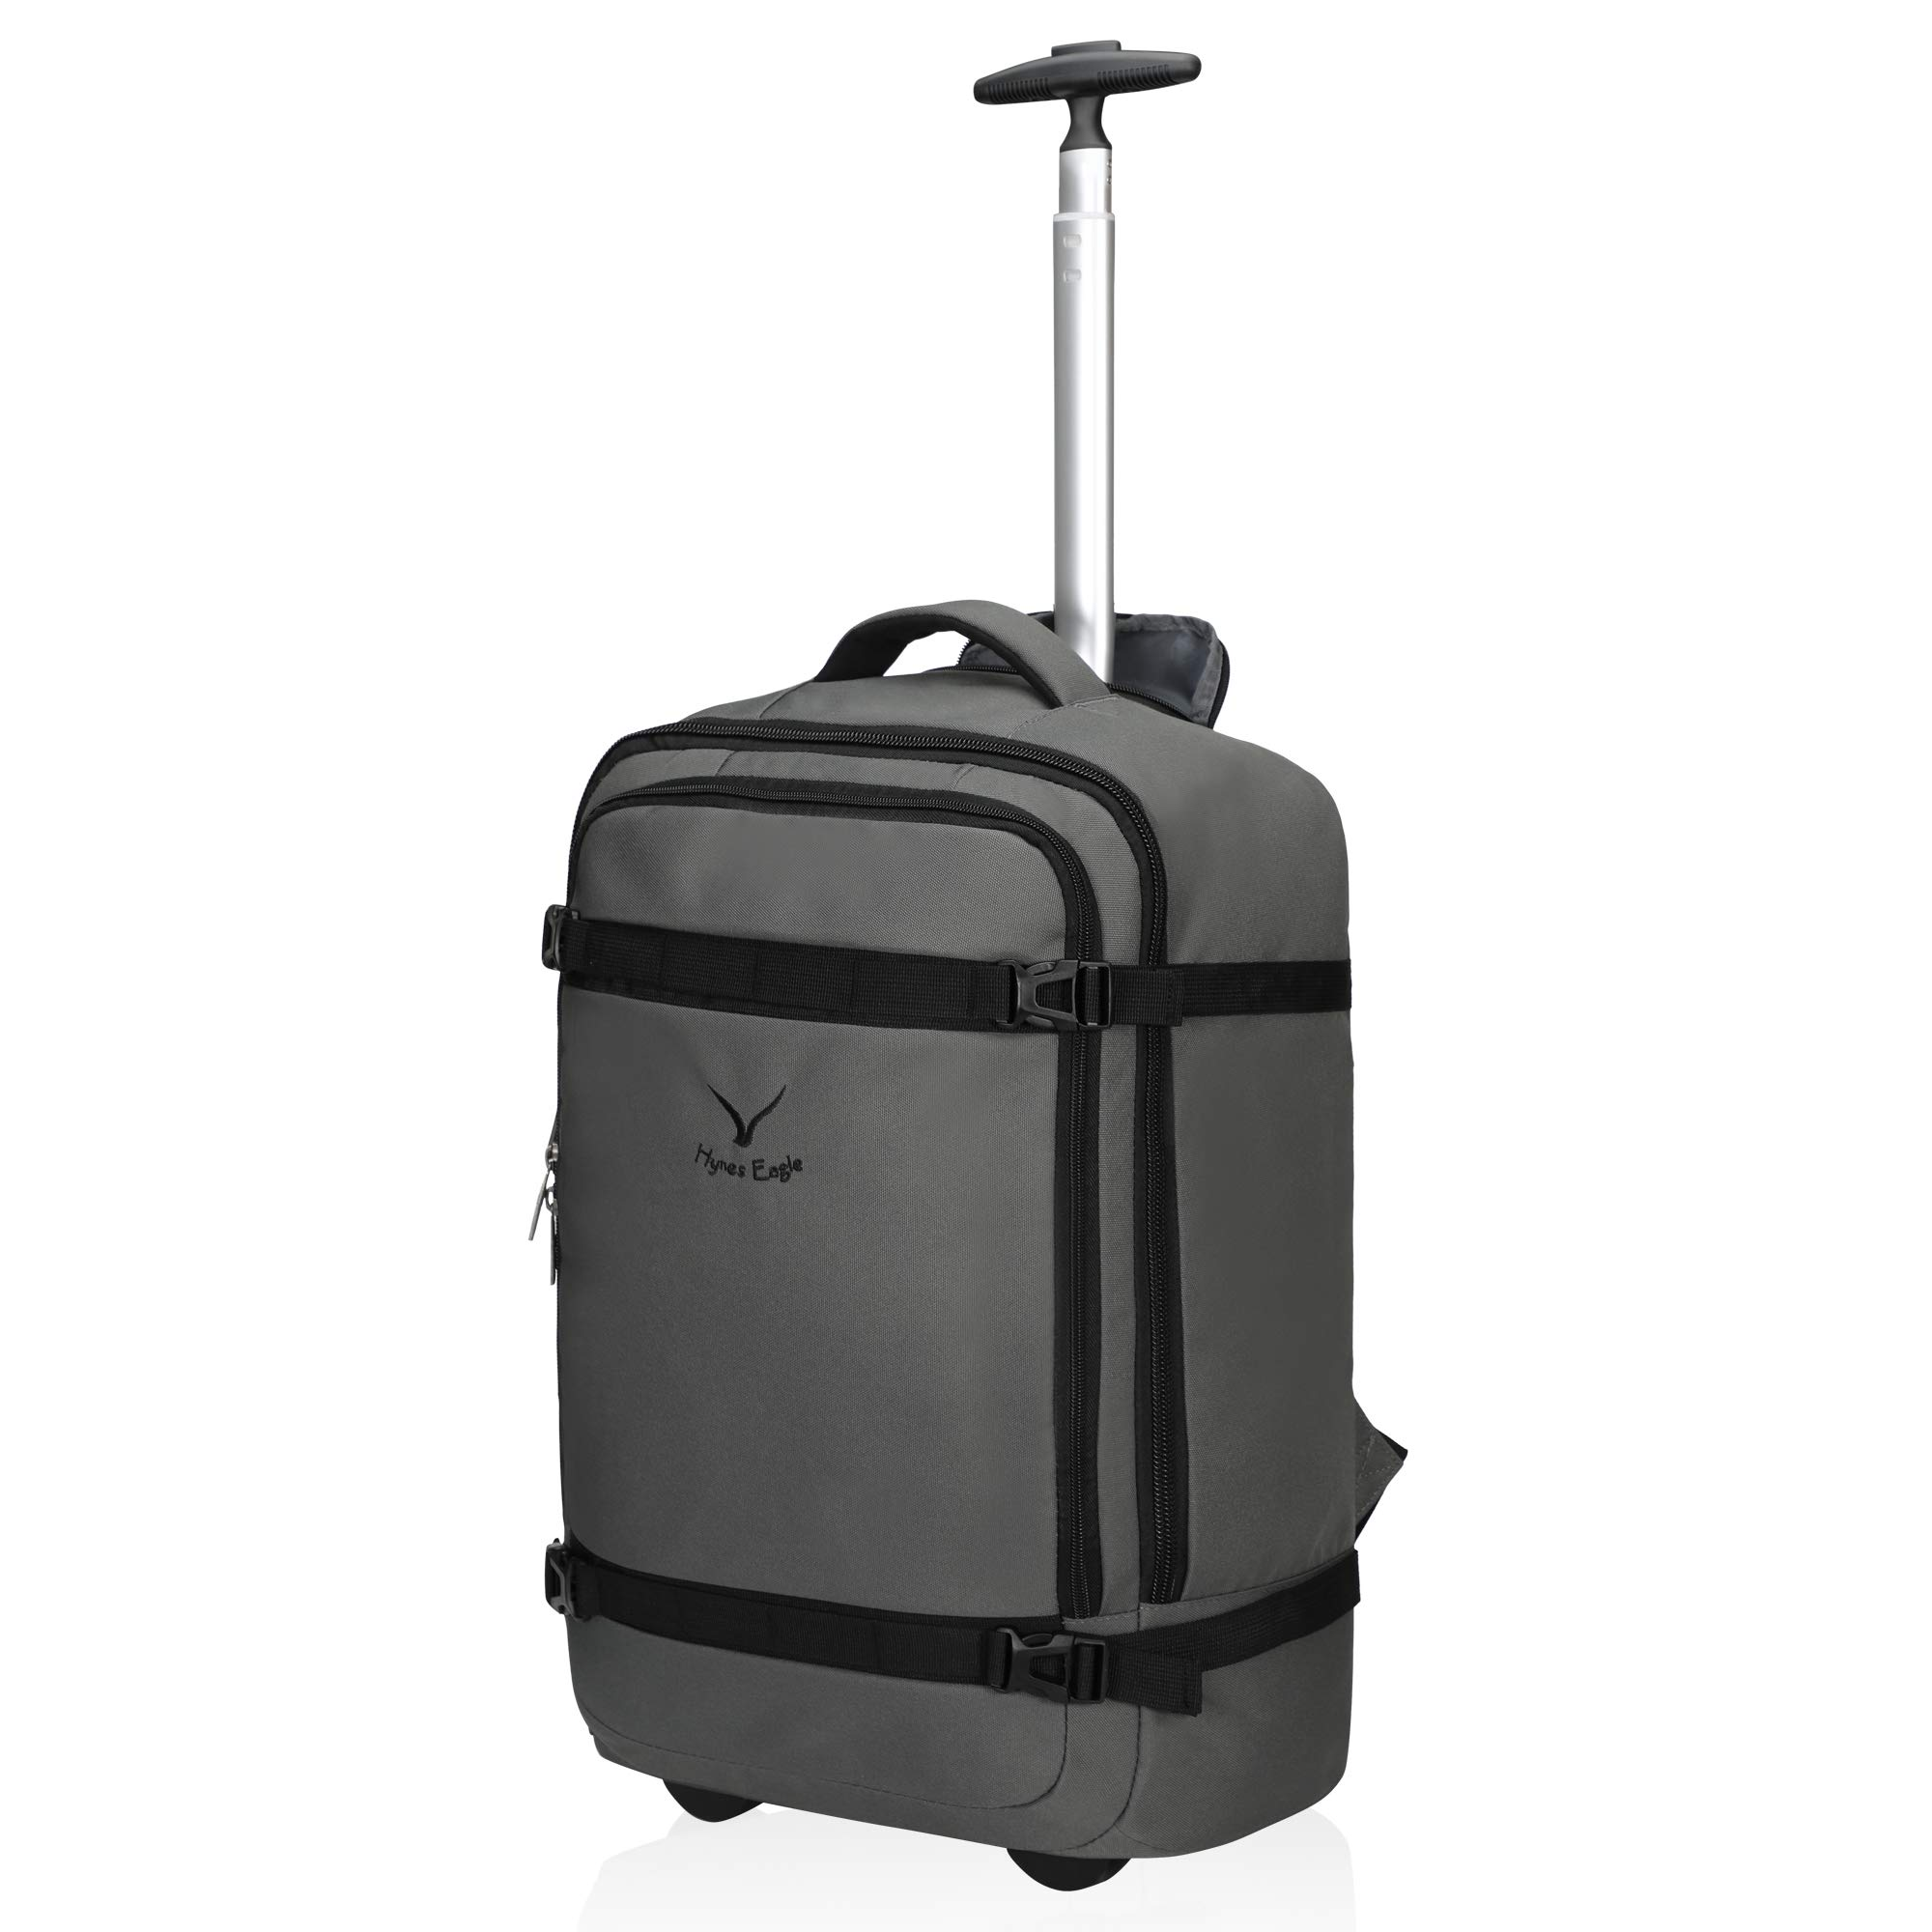 Hynes Eagle 42L Rolling Backpack Wheeled Backpack Flight Approved Carry on Luggage Travel Backpack Grey by Hynes Eagle